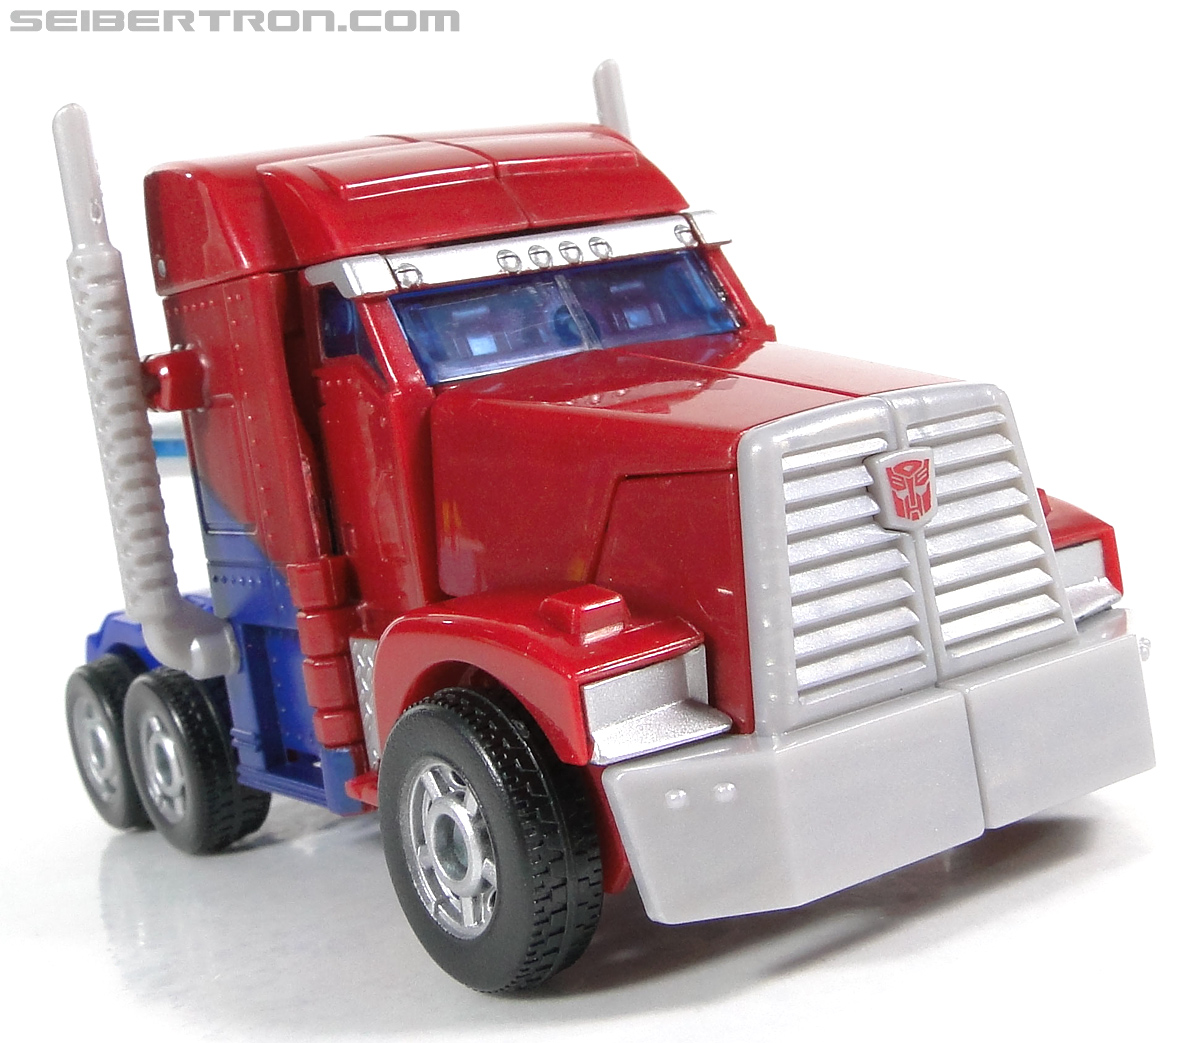 Transformers Prime: First Edition Optimus Prime (Image #47 of 170)